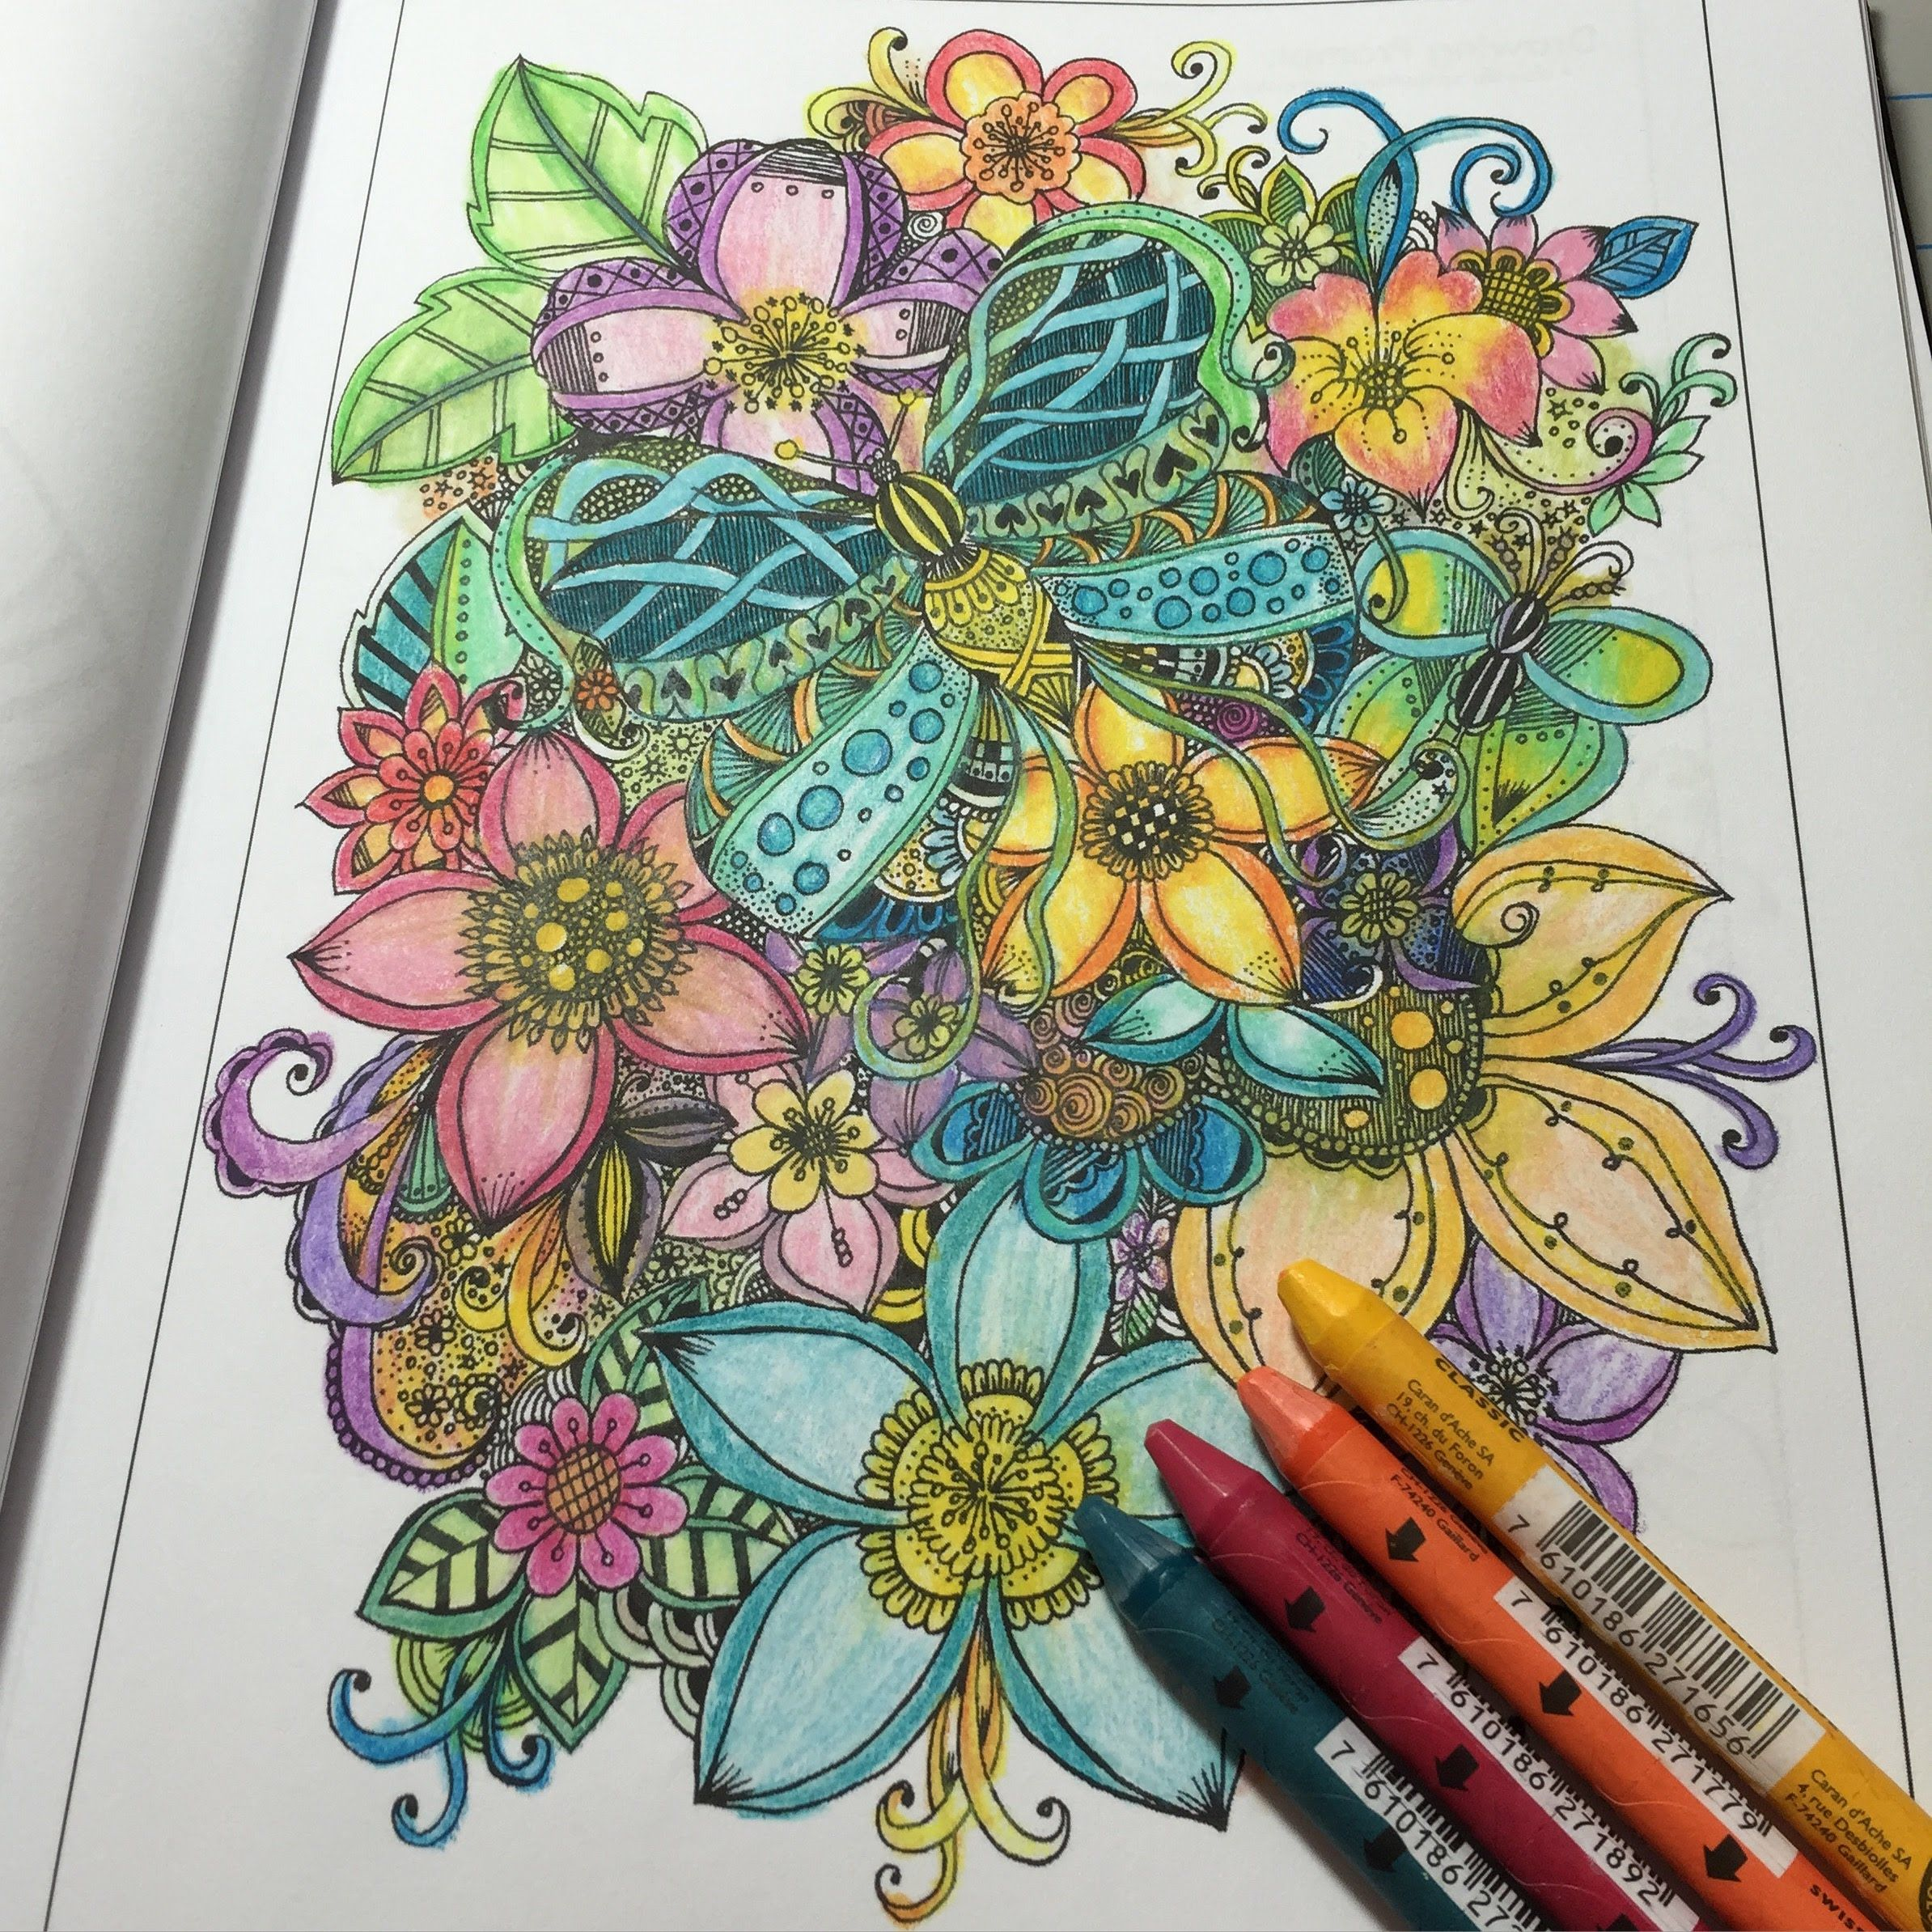 Coloring In My Coloring Book Color Supplies Used Are Listed In The Description Box Coloring Books Doodle Art Coloring Pages